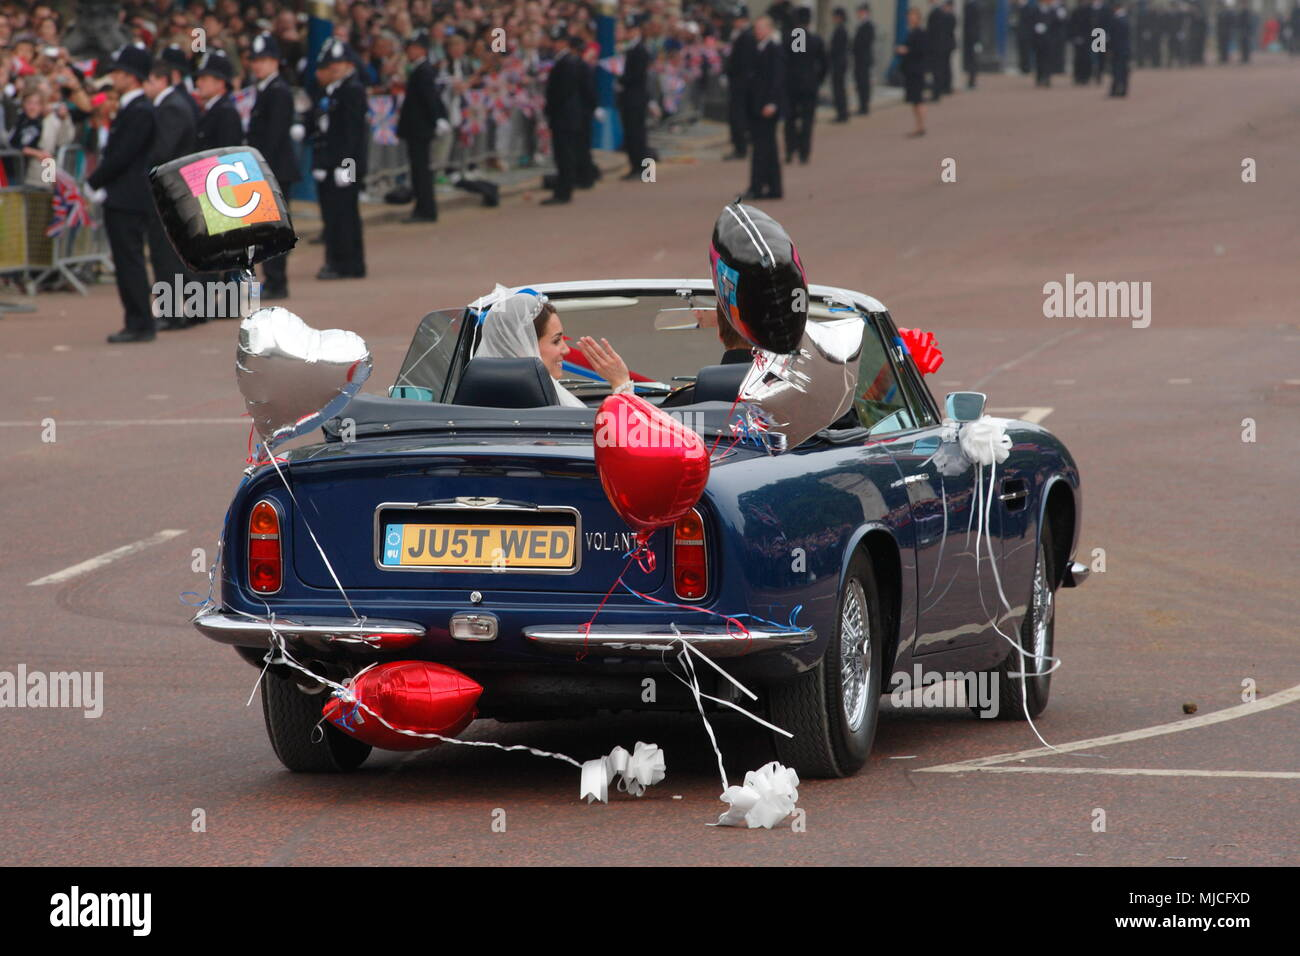 UK - Royal Wedding of Prince William and Kate (Catherine) Middleton - newlyweds William and Kate driving in an open top vintage Aston Martin Volante car along the Mall from  Buckingham Palace 29th April 2011 London UK Stock Photo